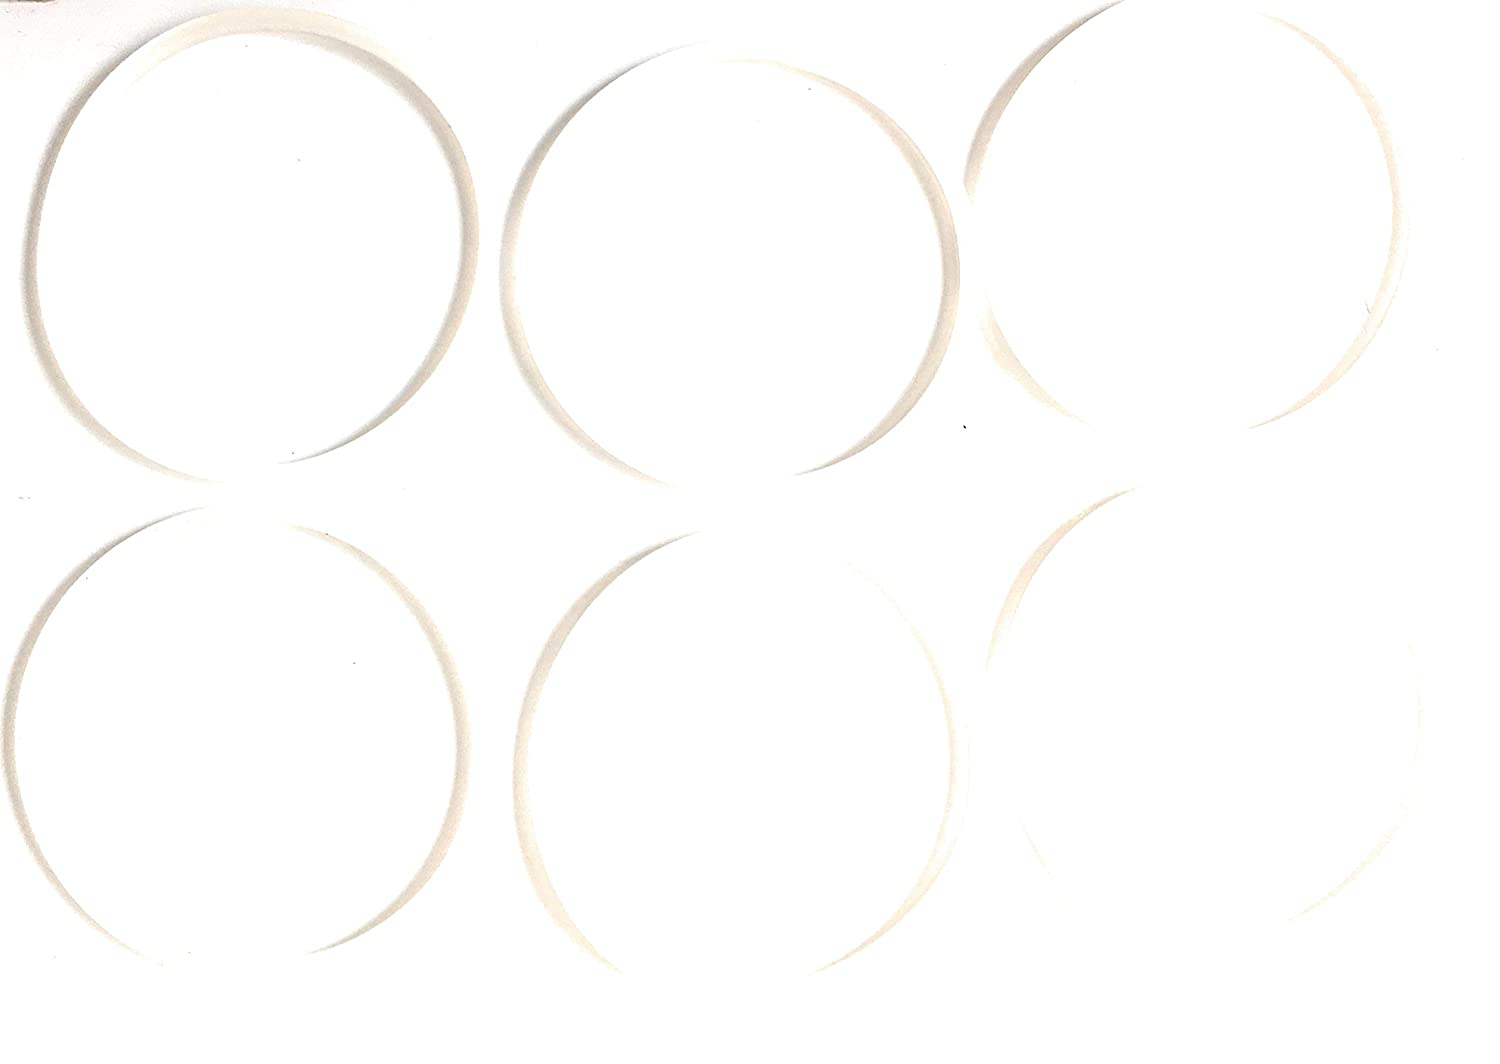 FAB INTERNATIONAL 6 Pack Sensio 13330,13586,13606,13615,10029 Bella Cucina Replacement Gasket